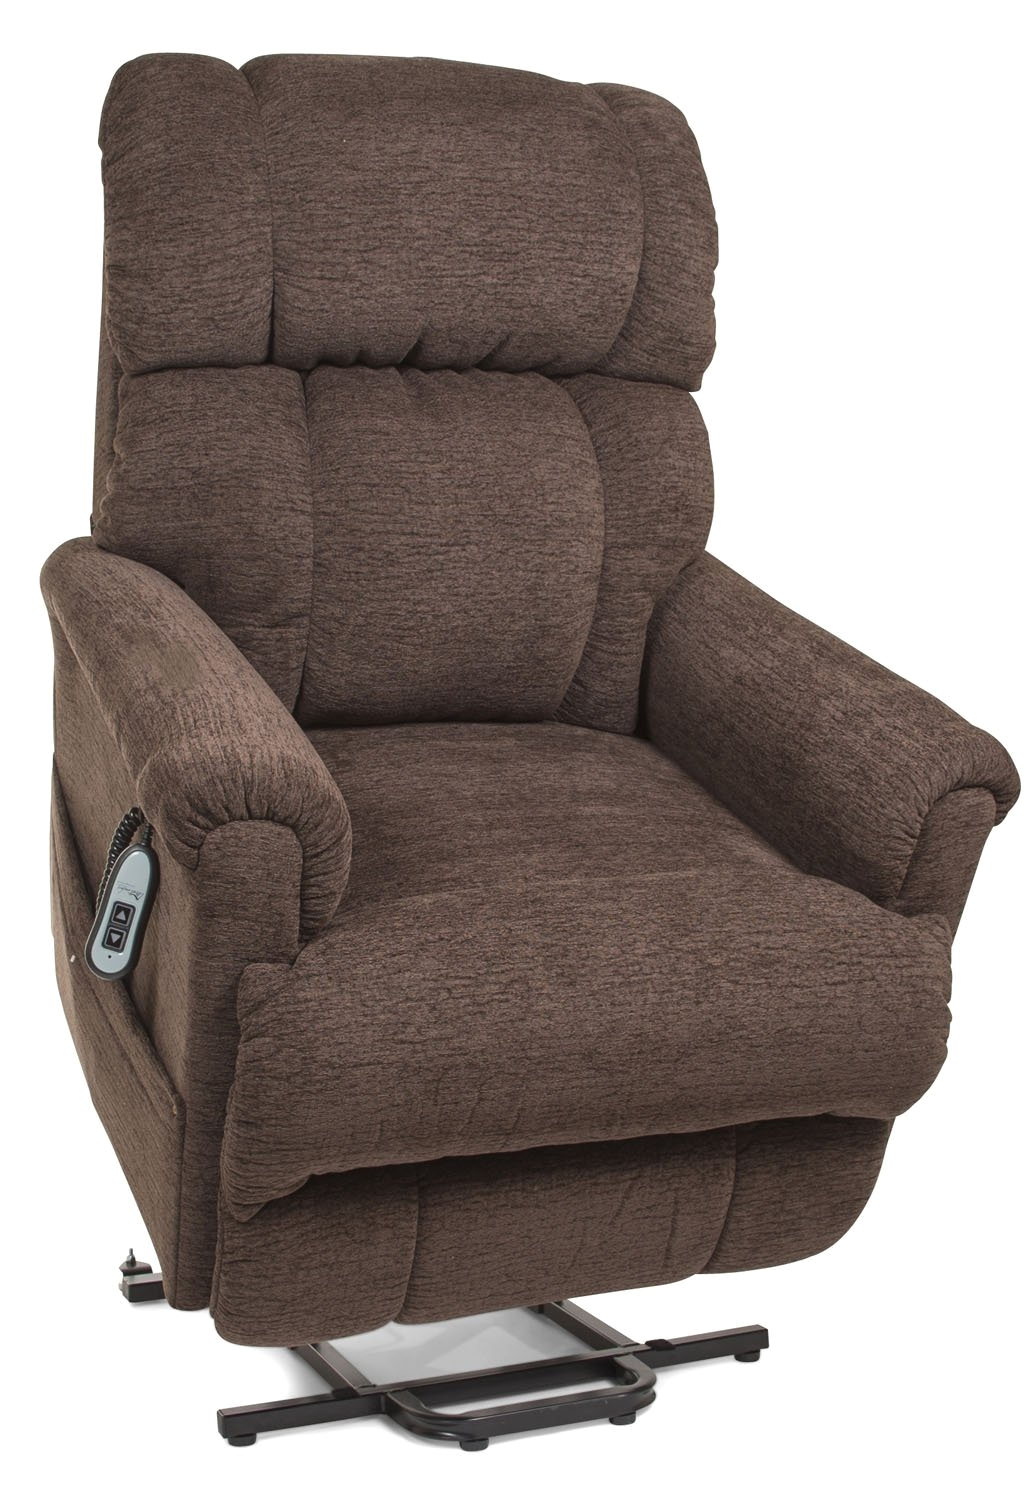 Best Rated Recliner Chairs Space Saving Recliners Recliner and Lift Chairs Lift and Massage